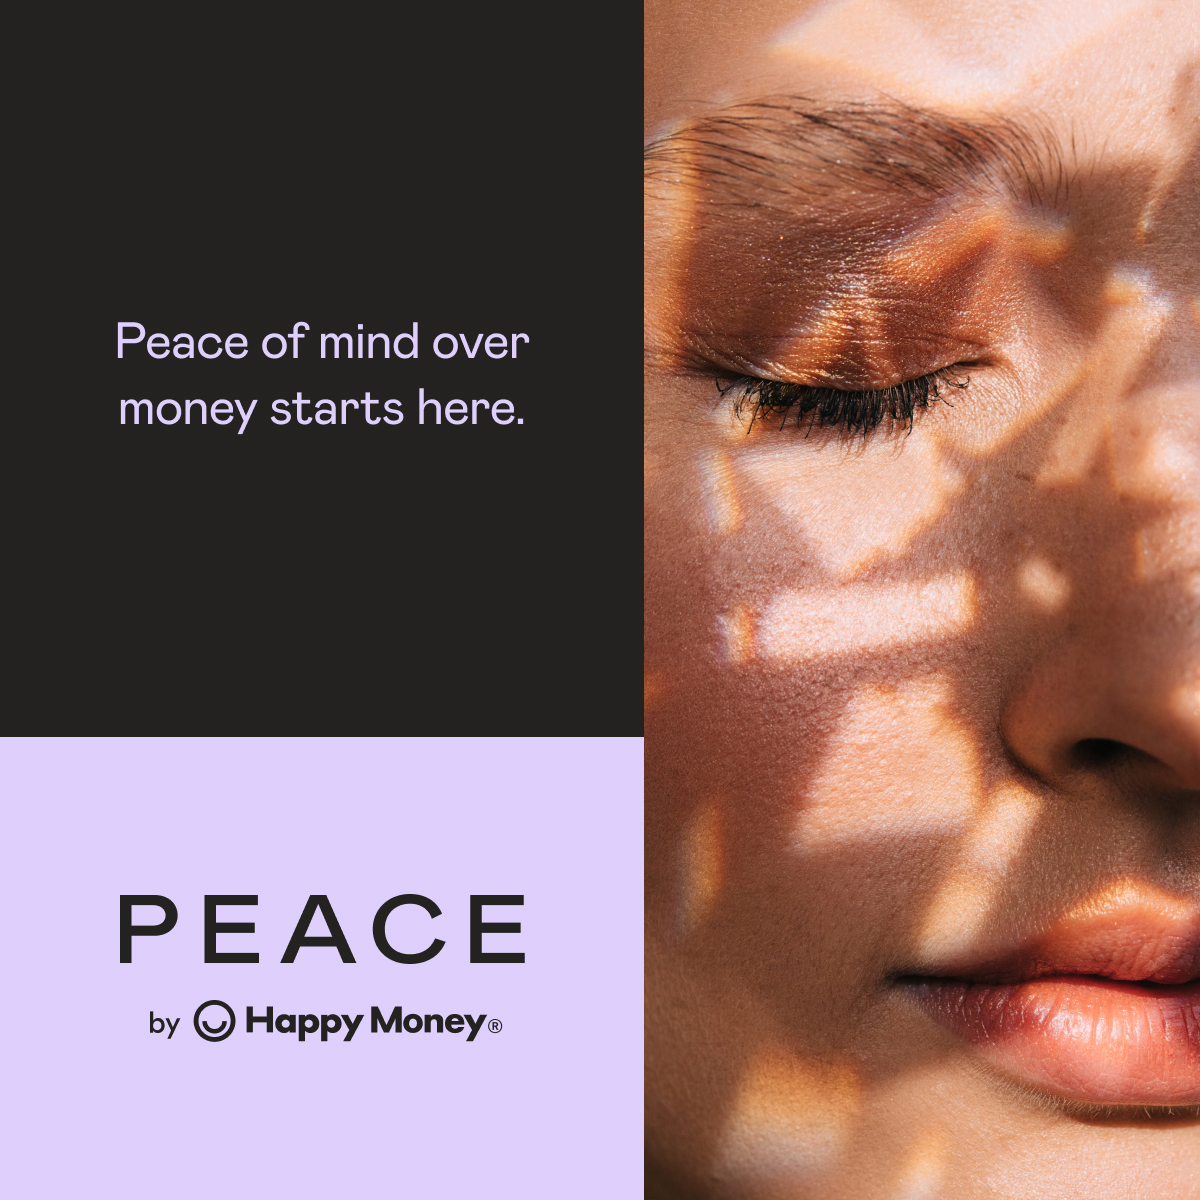 Happy Money Offers Peace - A Free, 6-Week Wellness Course